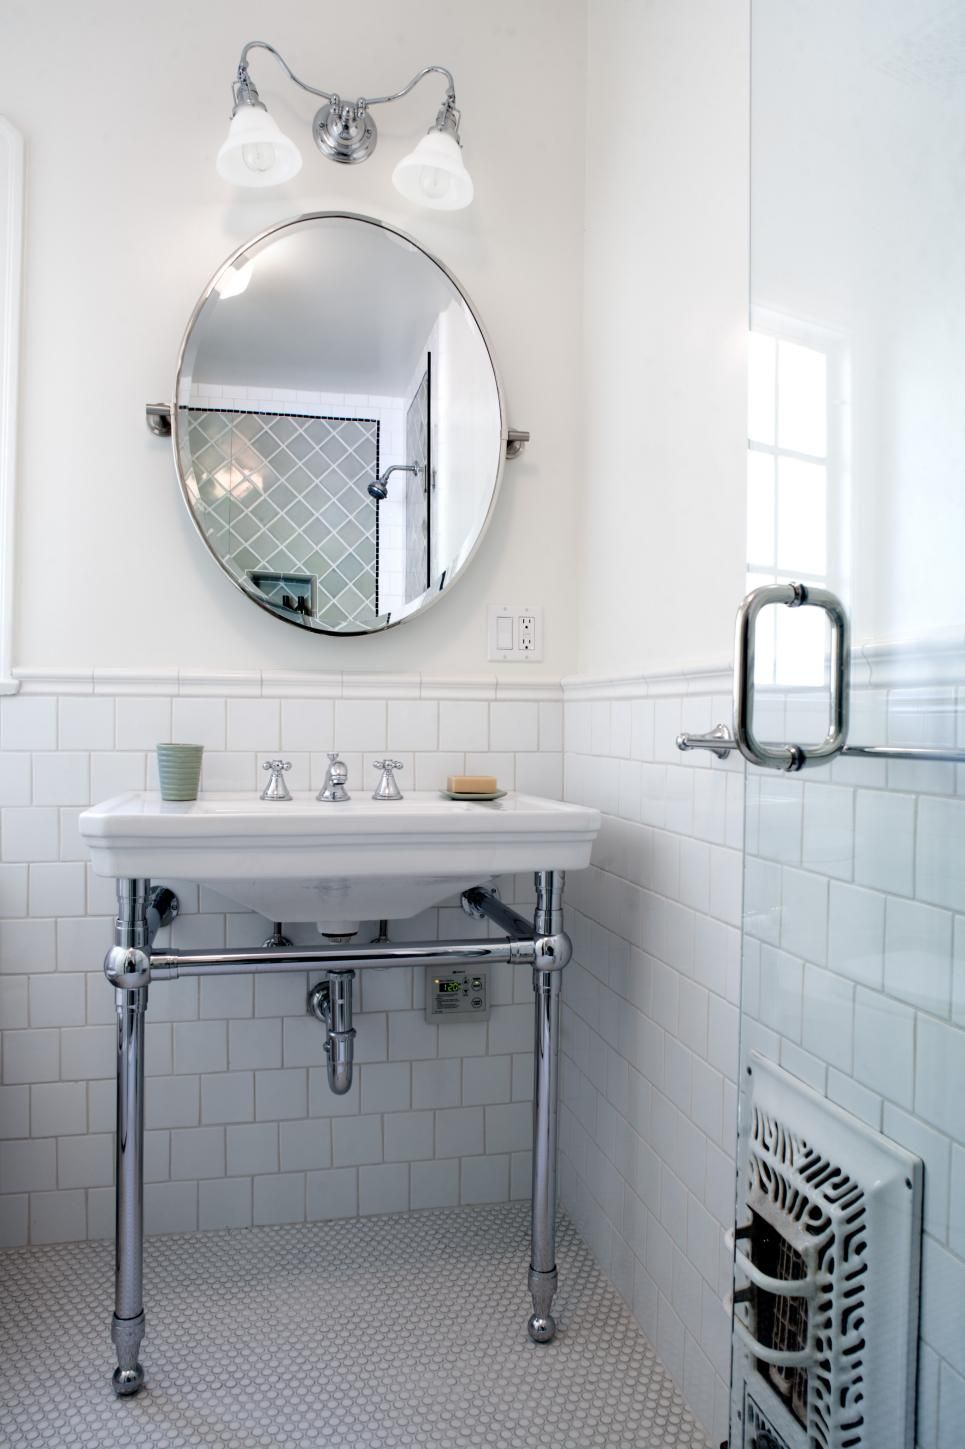 Tile wainscoting bathroom - This Contemporary Guest Bathroom Features White Tile Wainscoting Along The Walls And A Penny Tile Floor